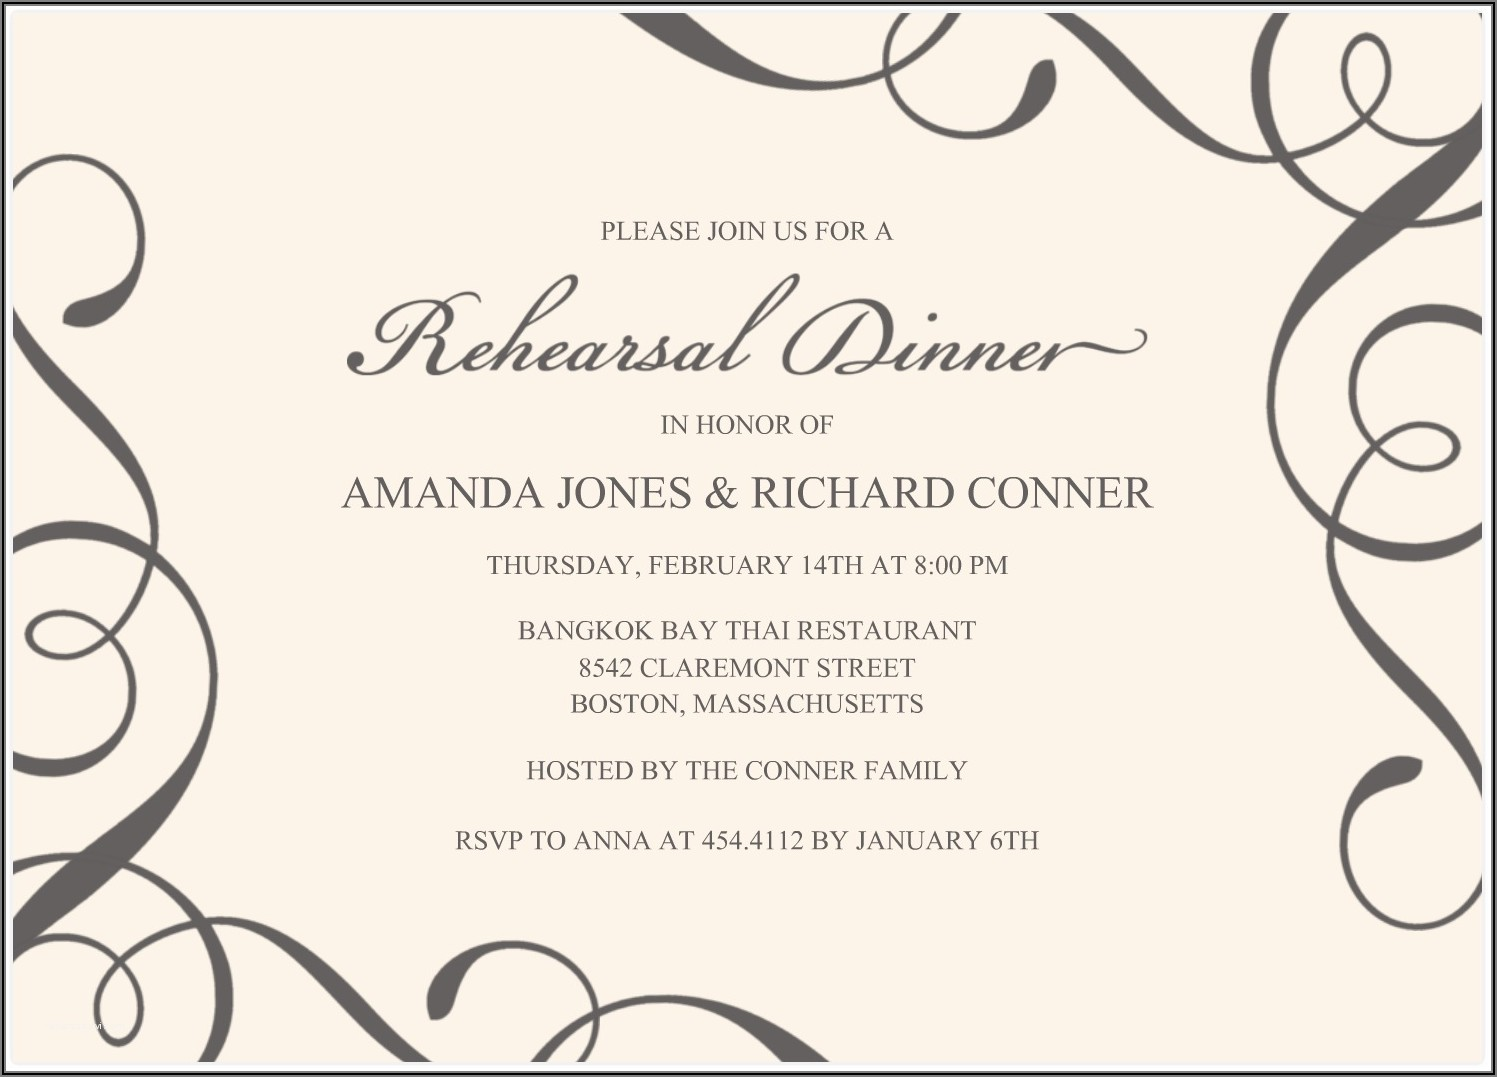 Gala Dinner Invitation Email Template